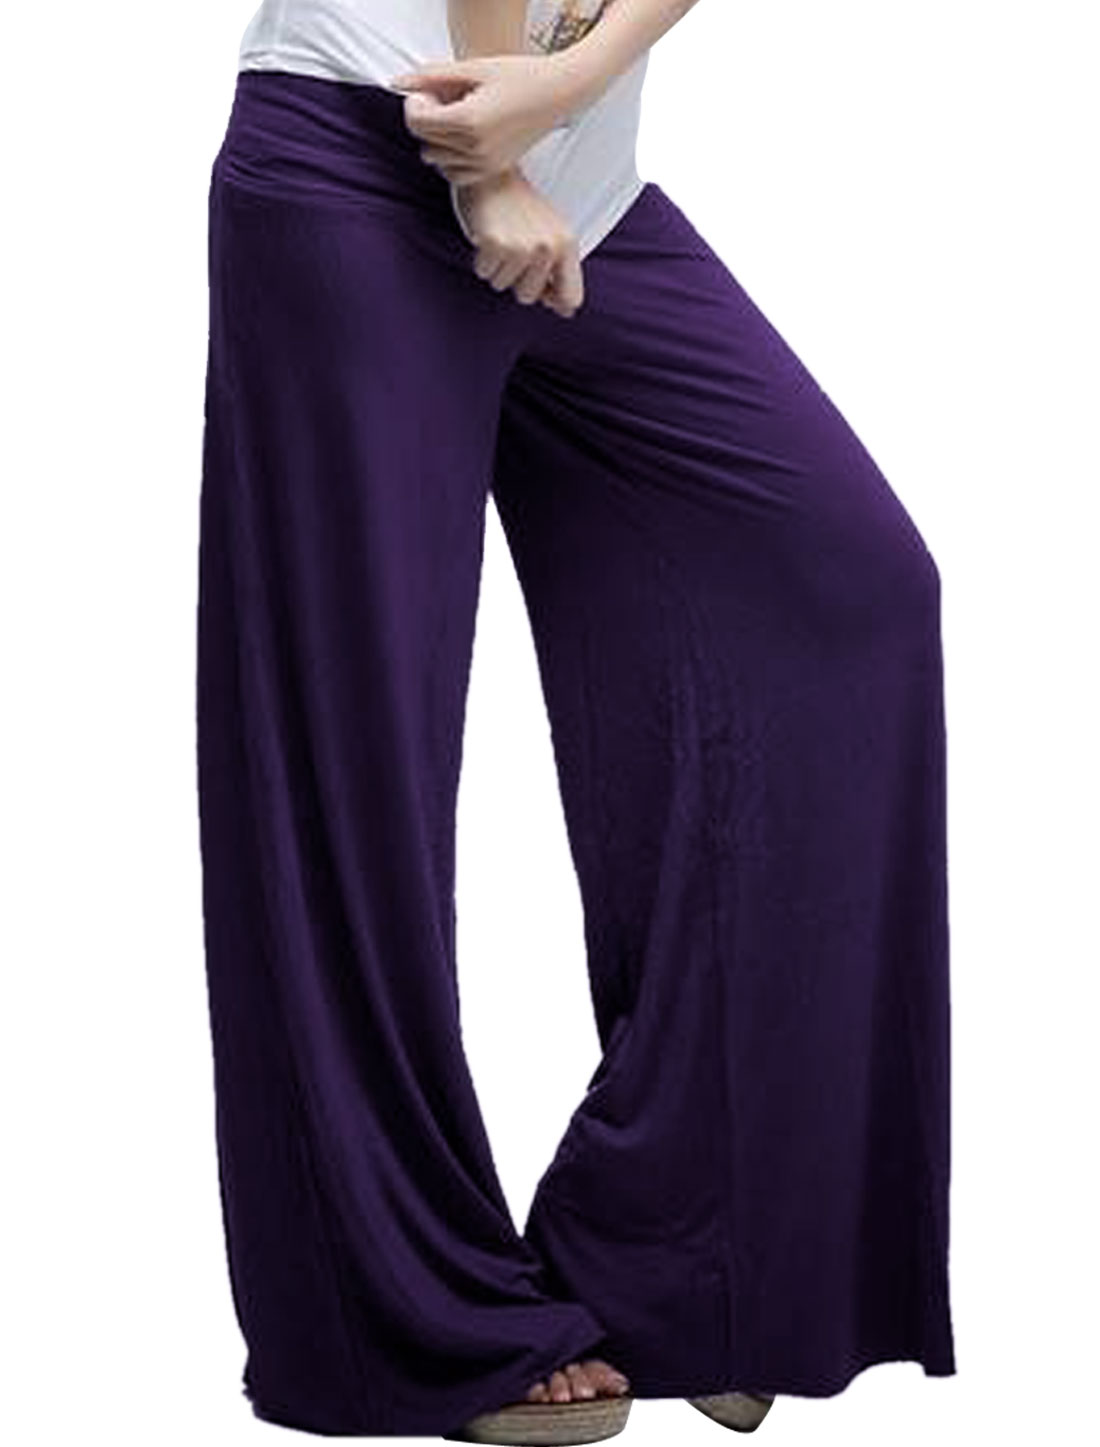 Ladies Dark Purple Elastic Waist Spring Strethcy Loose Leg Opening Pants XS